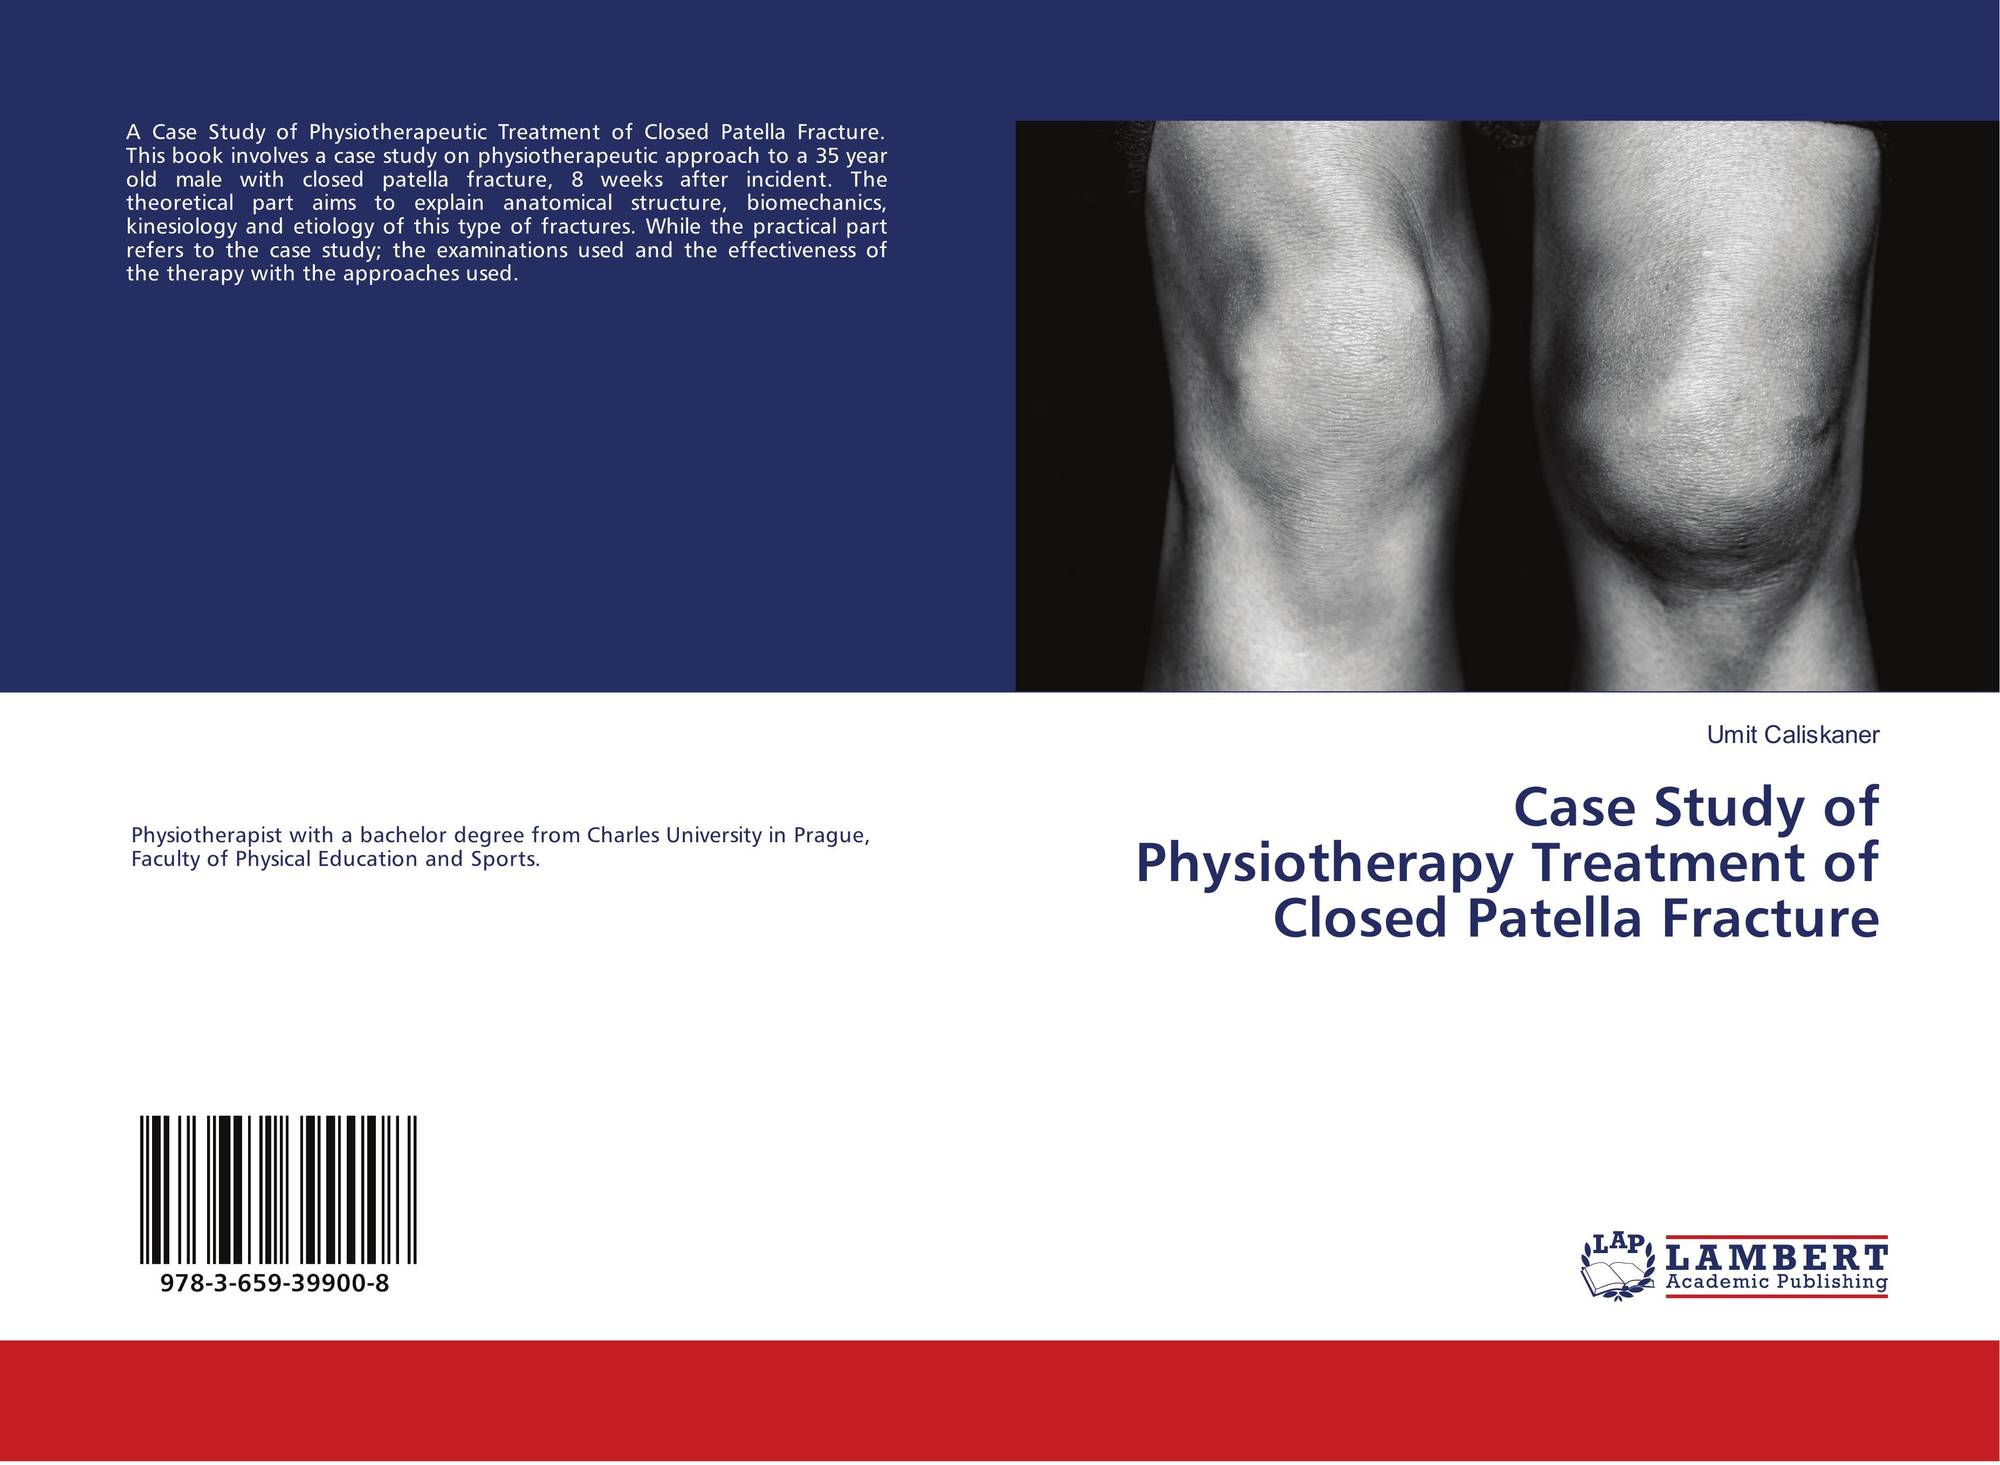 Case Study of Physiotherapy Treatment of Closed Patella Fracture